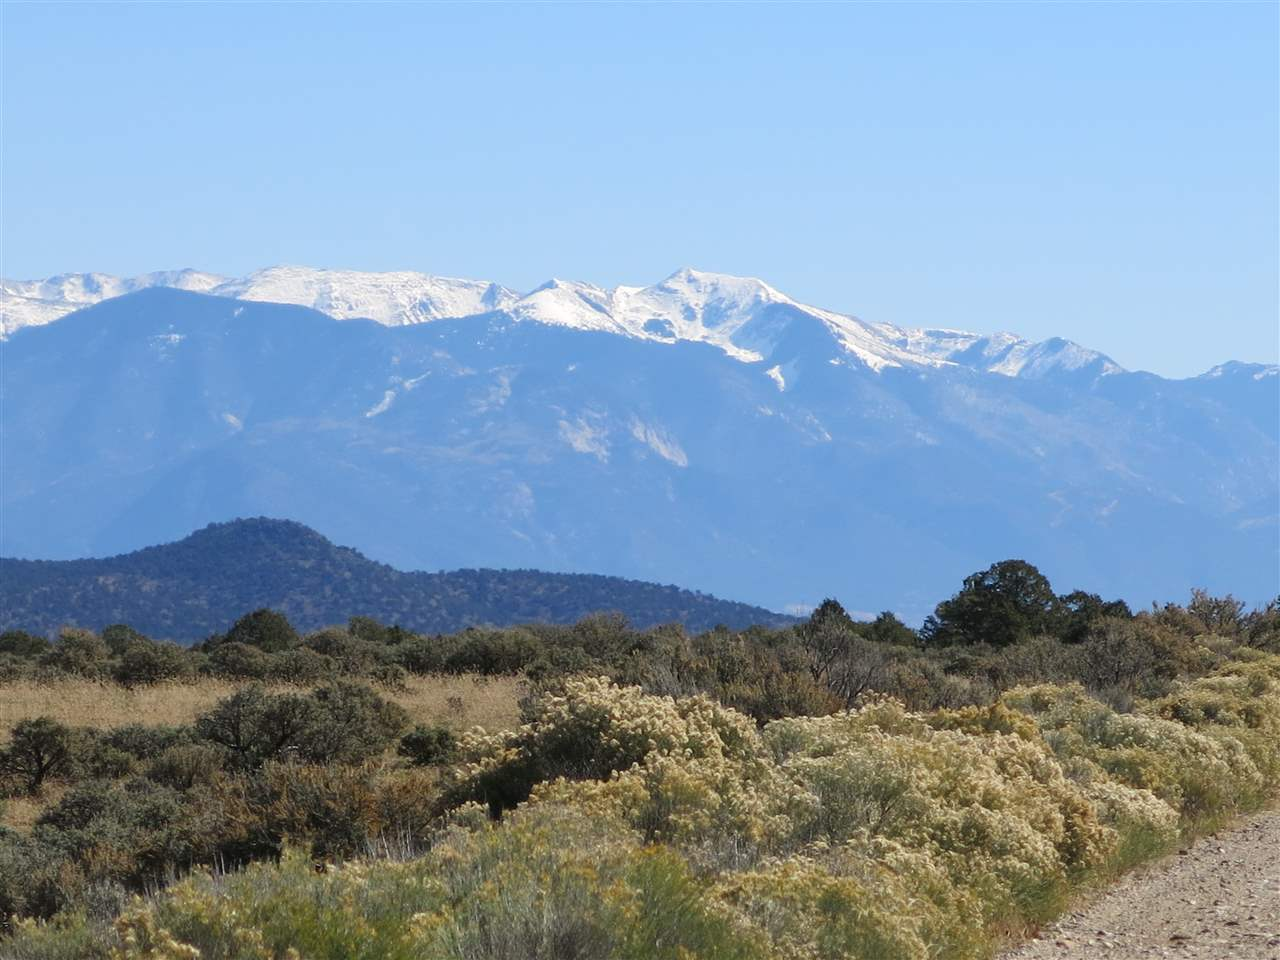 Lot 15 off Chile line rd, Tres Piedras, NM 87529